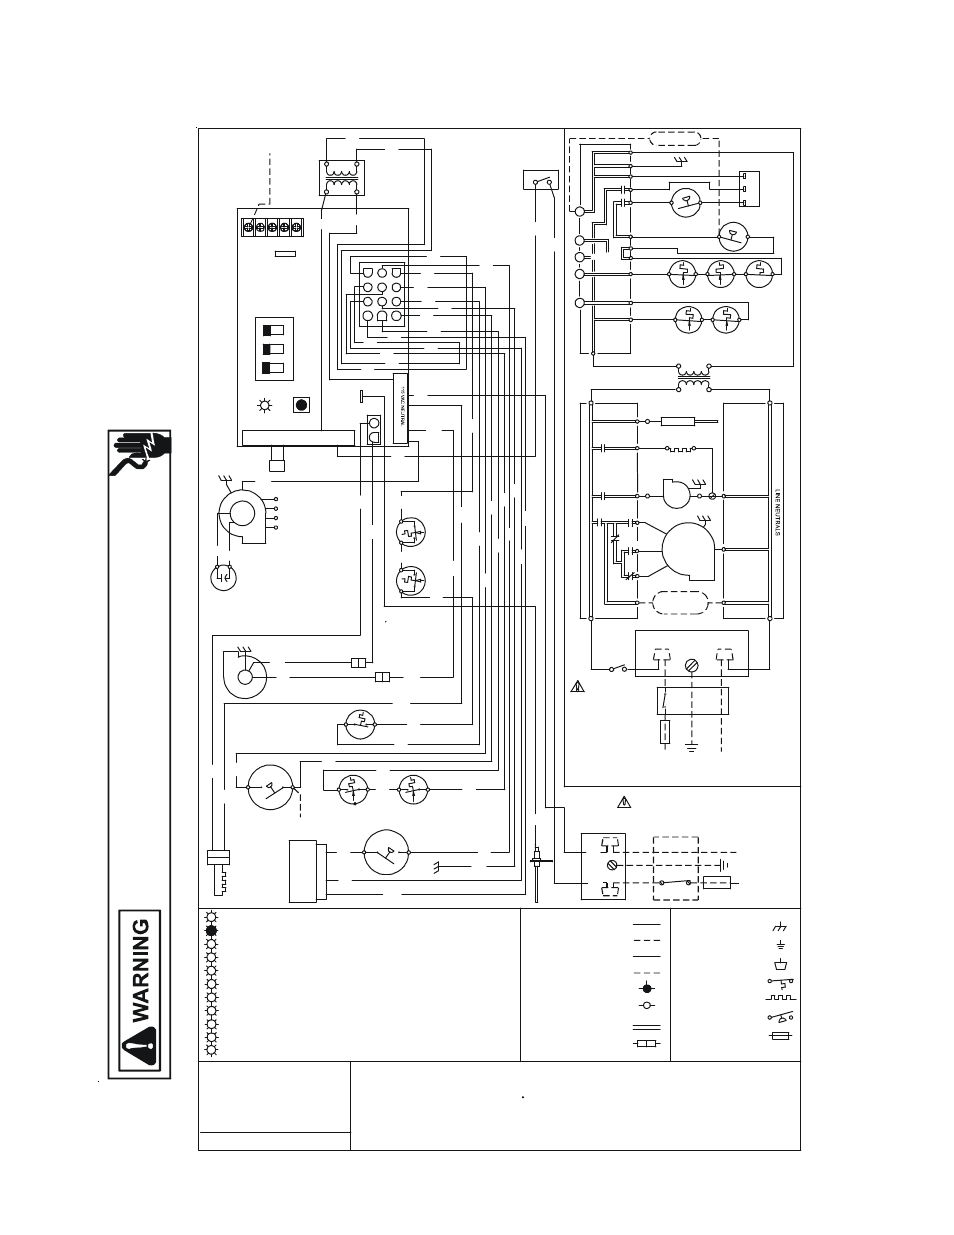 Diagram  Bmw G31 User Wiring Diagram Full Version Hd Quality Wiring Diagram